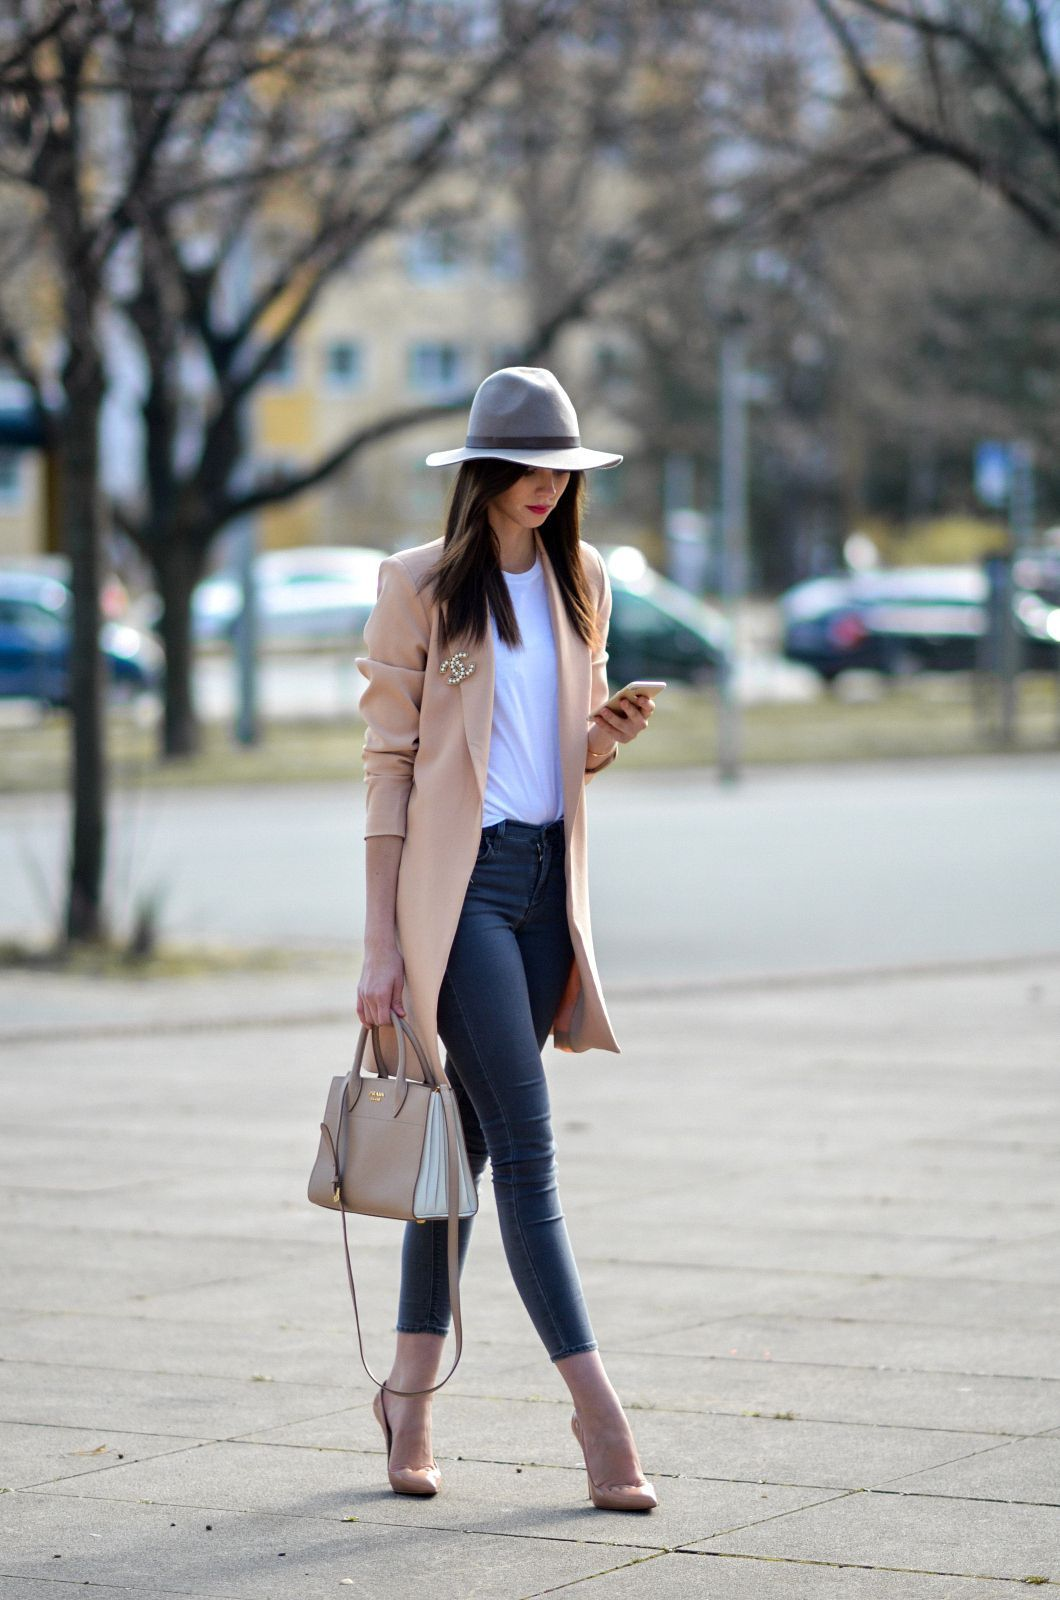 Watch 36 Trendy Outfit Ideas for Fall – Fall Outfit Inspiration video